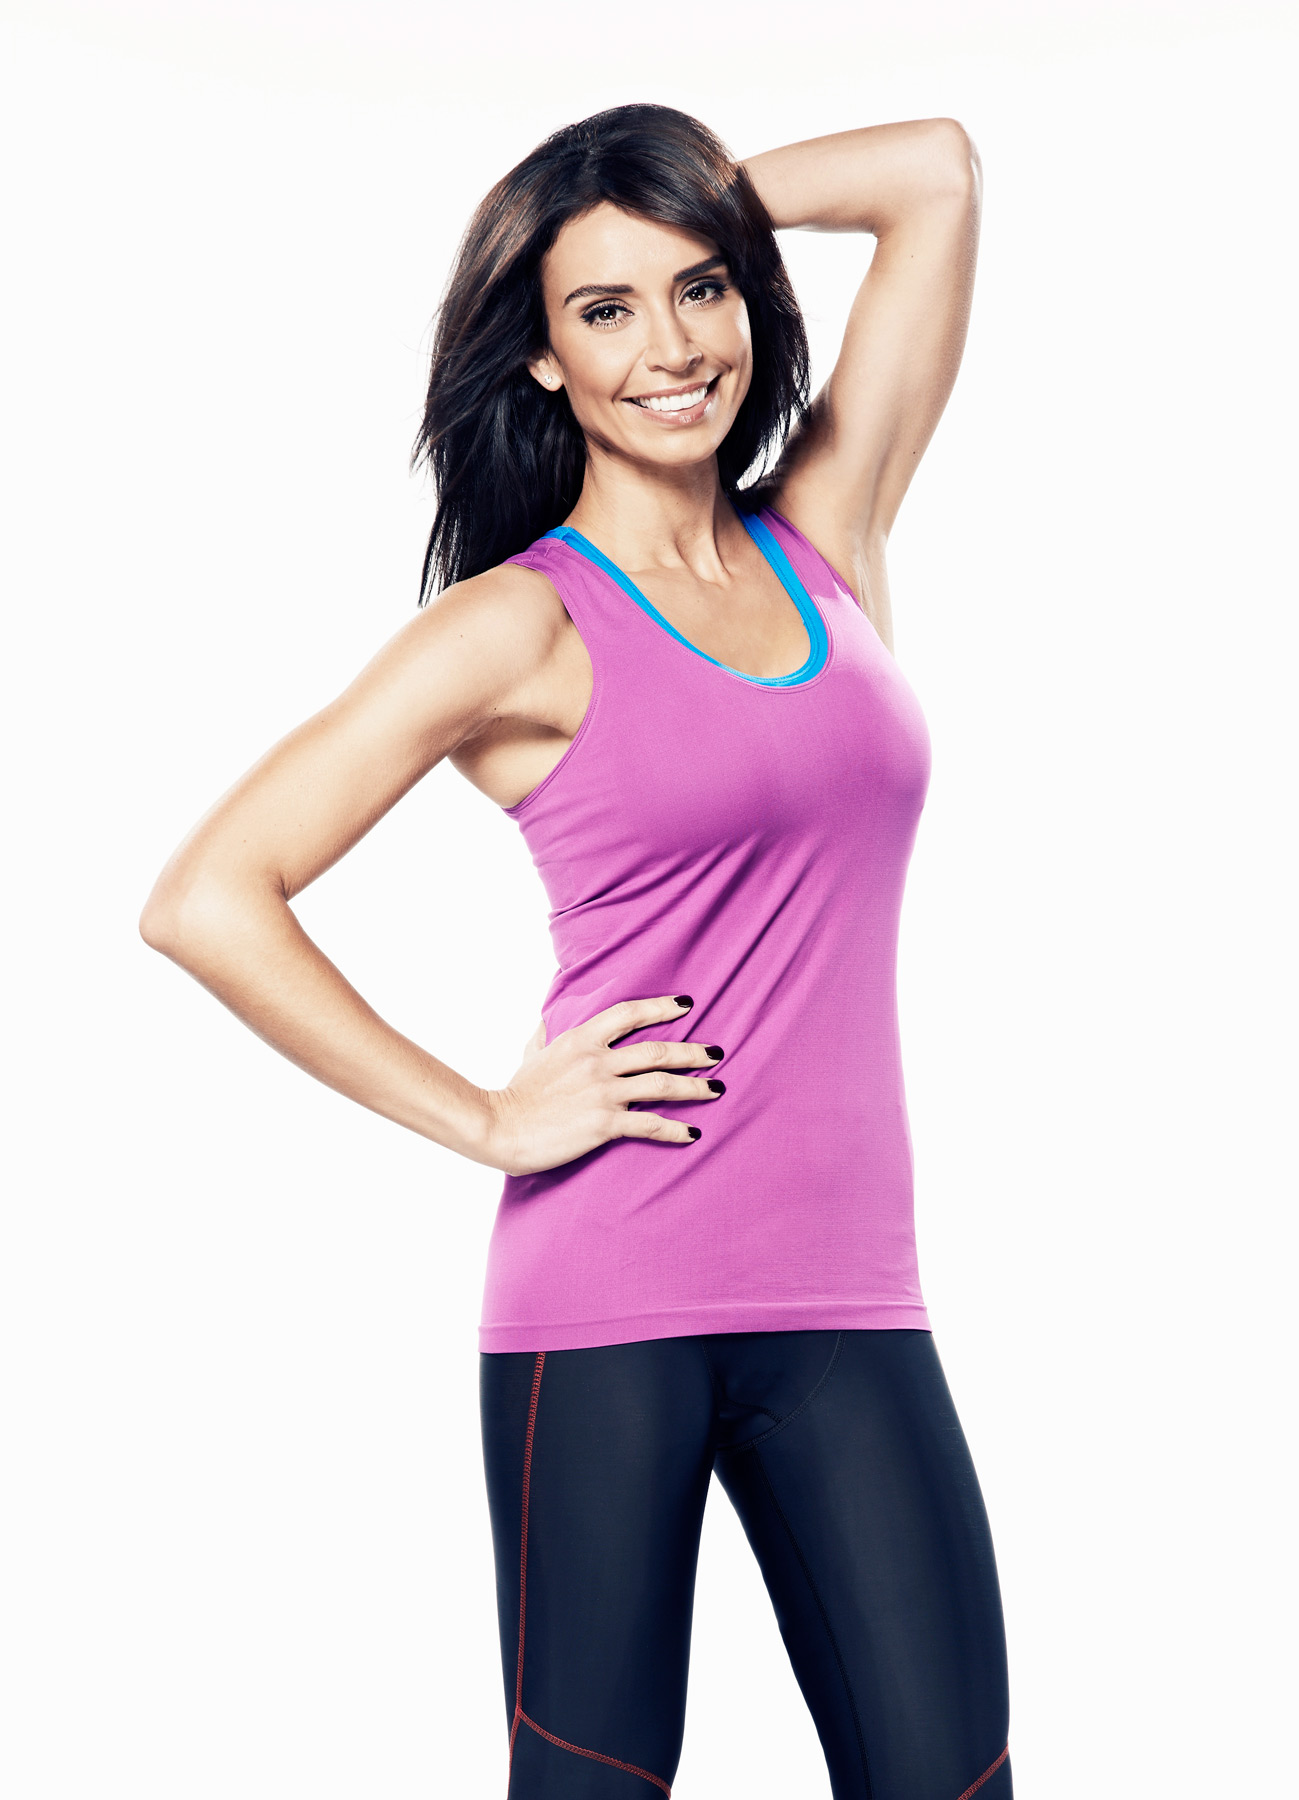 Christine Bleakley cover shoot